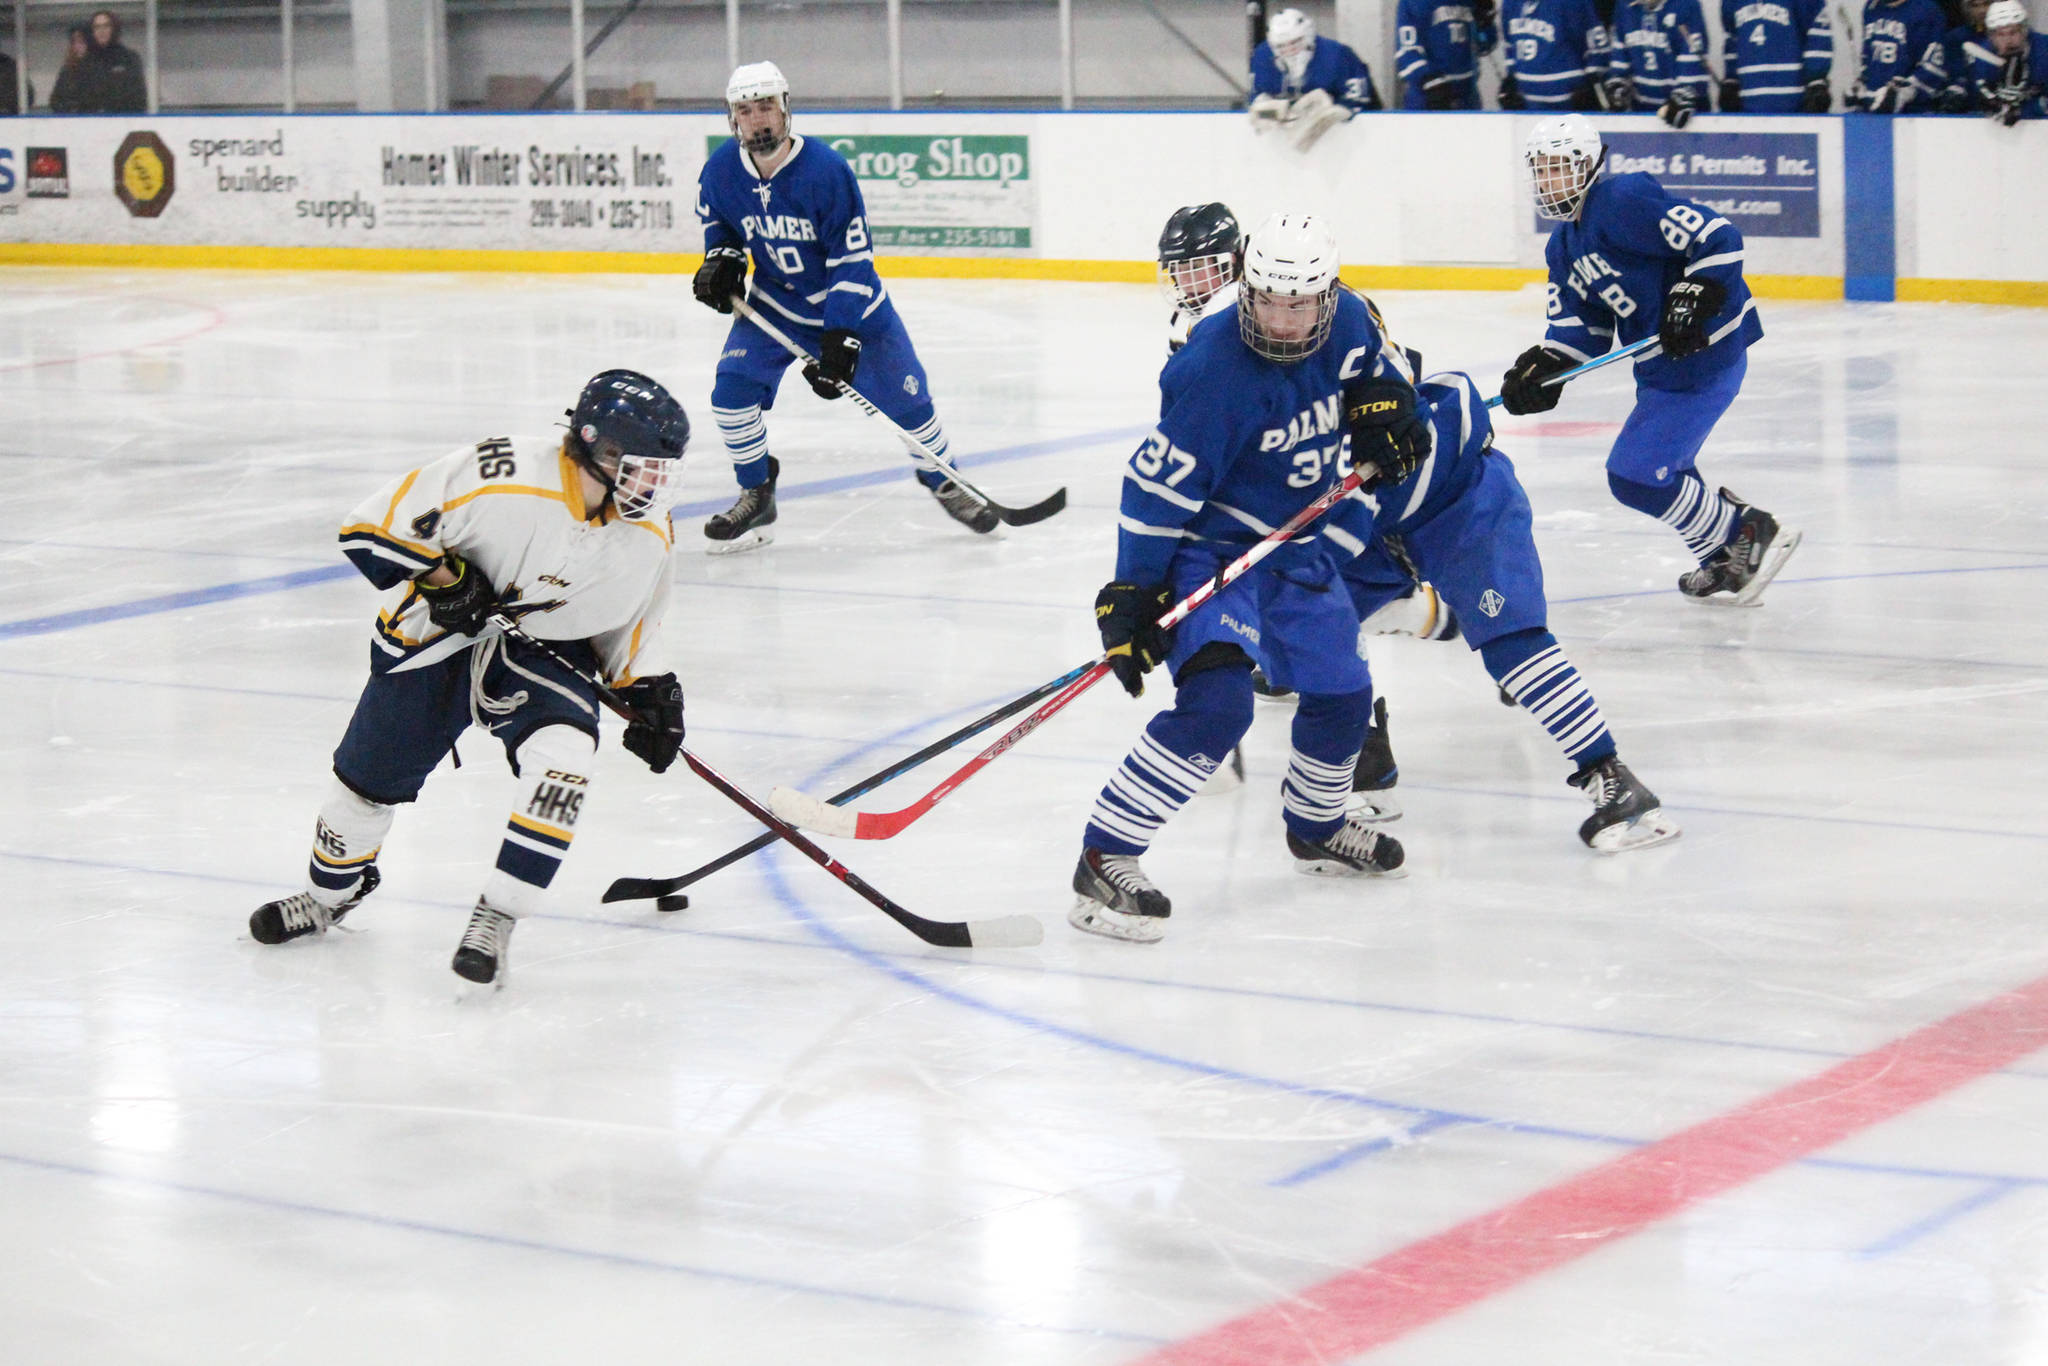 Homer's Lee Lowe tries to get the puck away from several Palmer High School skaters during their game Saturday, Dec. 2, 2017 at Kevin Bell Ice Arena in Homer, Alaska. The Mariners swept all three Mat-Su Valley teams they played over the weekend, moving to 3-0 in conference play. (Photo by Megan Pacer/Homer News)